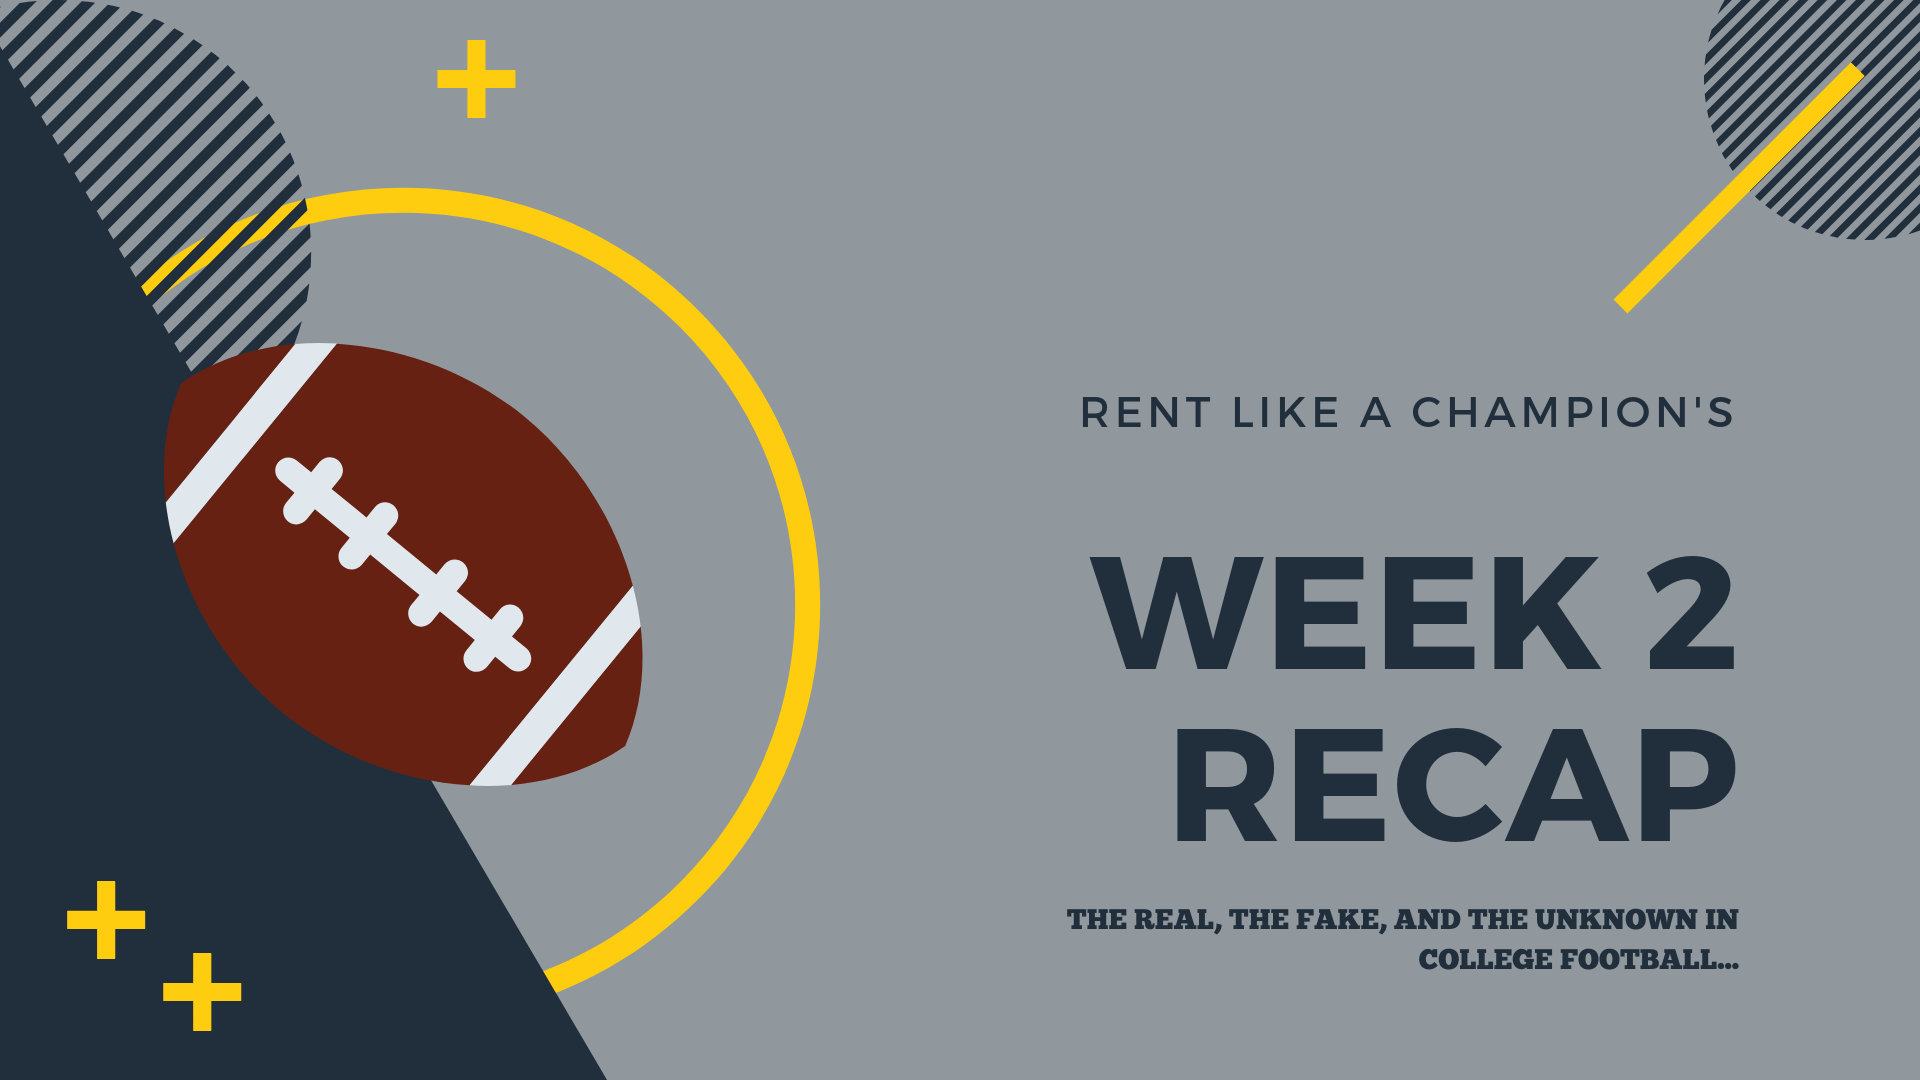 Fact, Fiction, and Undecided: Dissecting storylines through college football's first two weeks